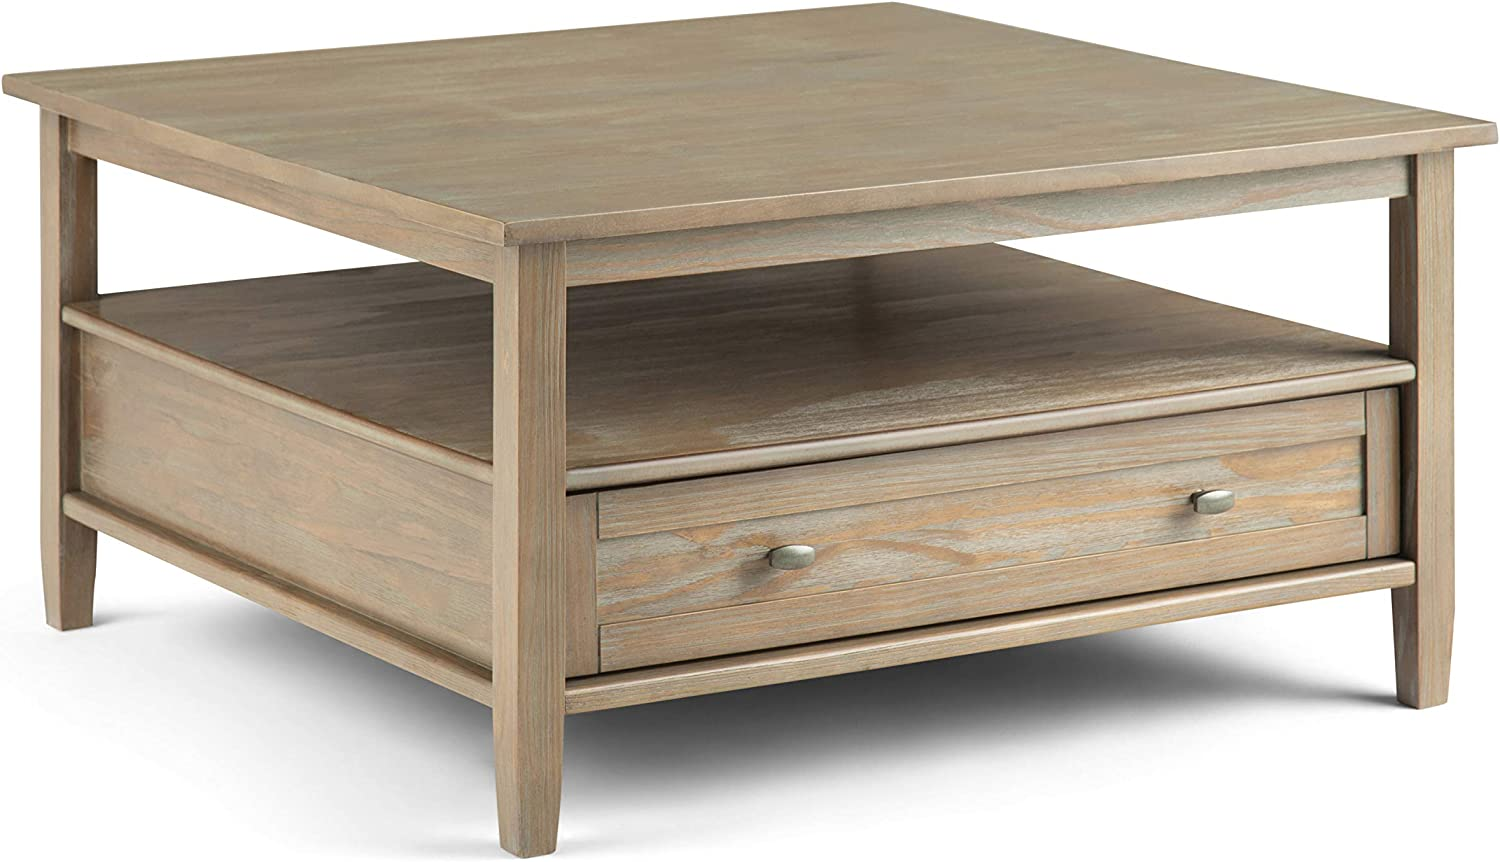 SIMPLIHOME Warm Shaker SOLID WOOD 36 inch Wide Square Rustic Coffee Table in Distressed Grey, for the Living Room and Family Room